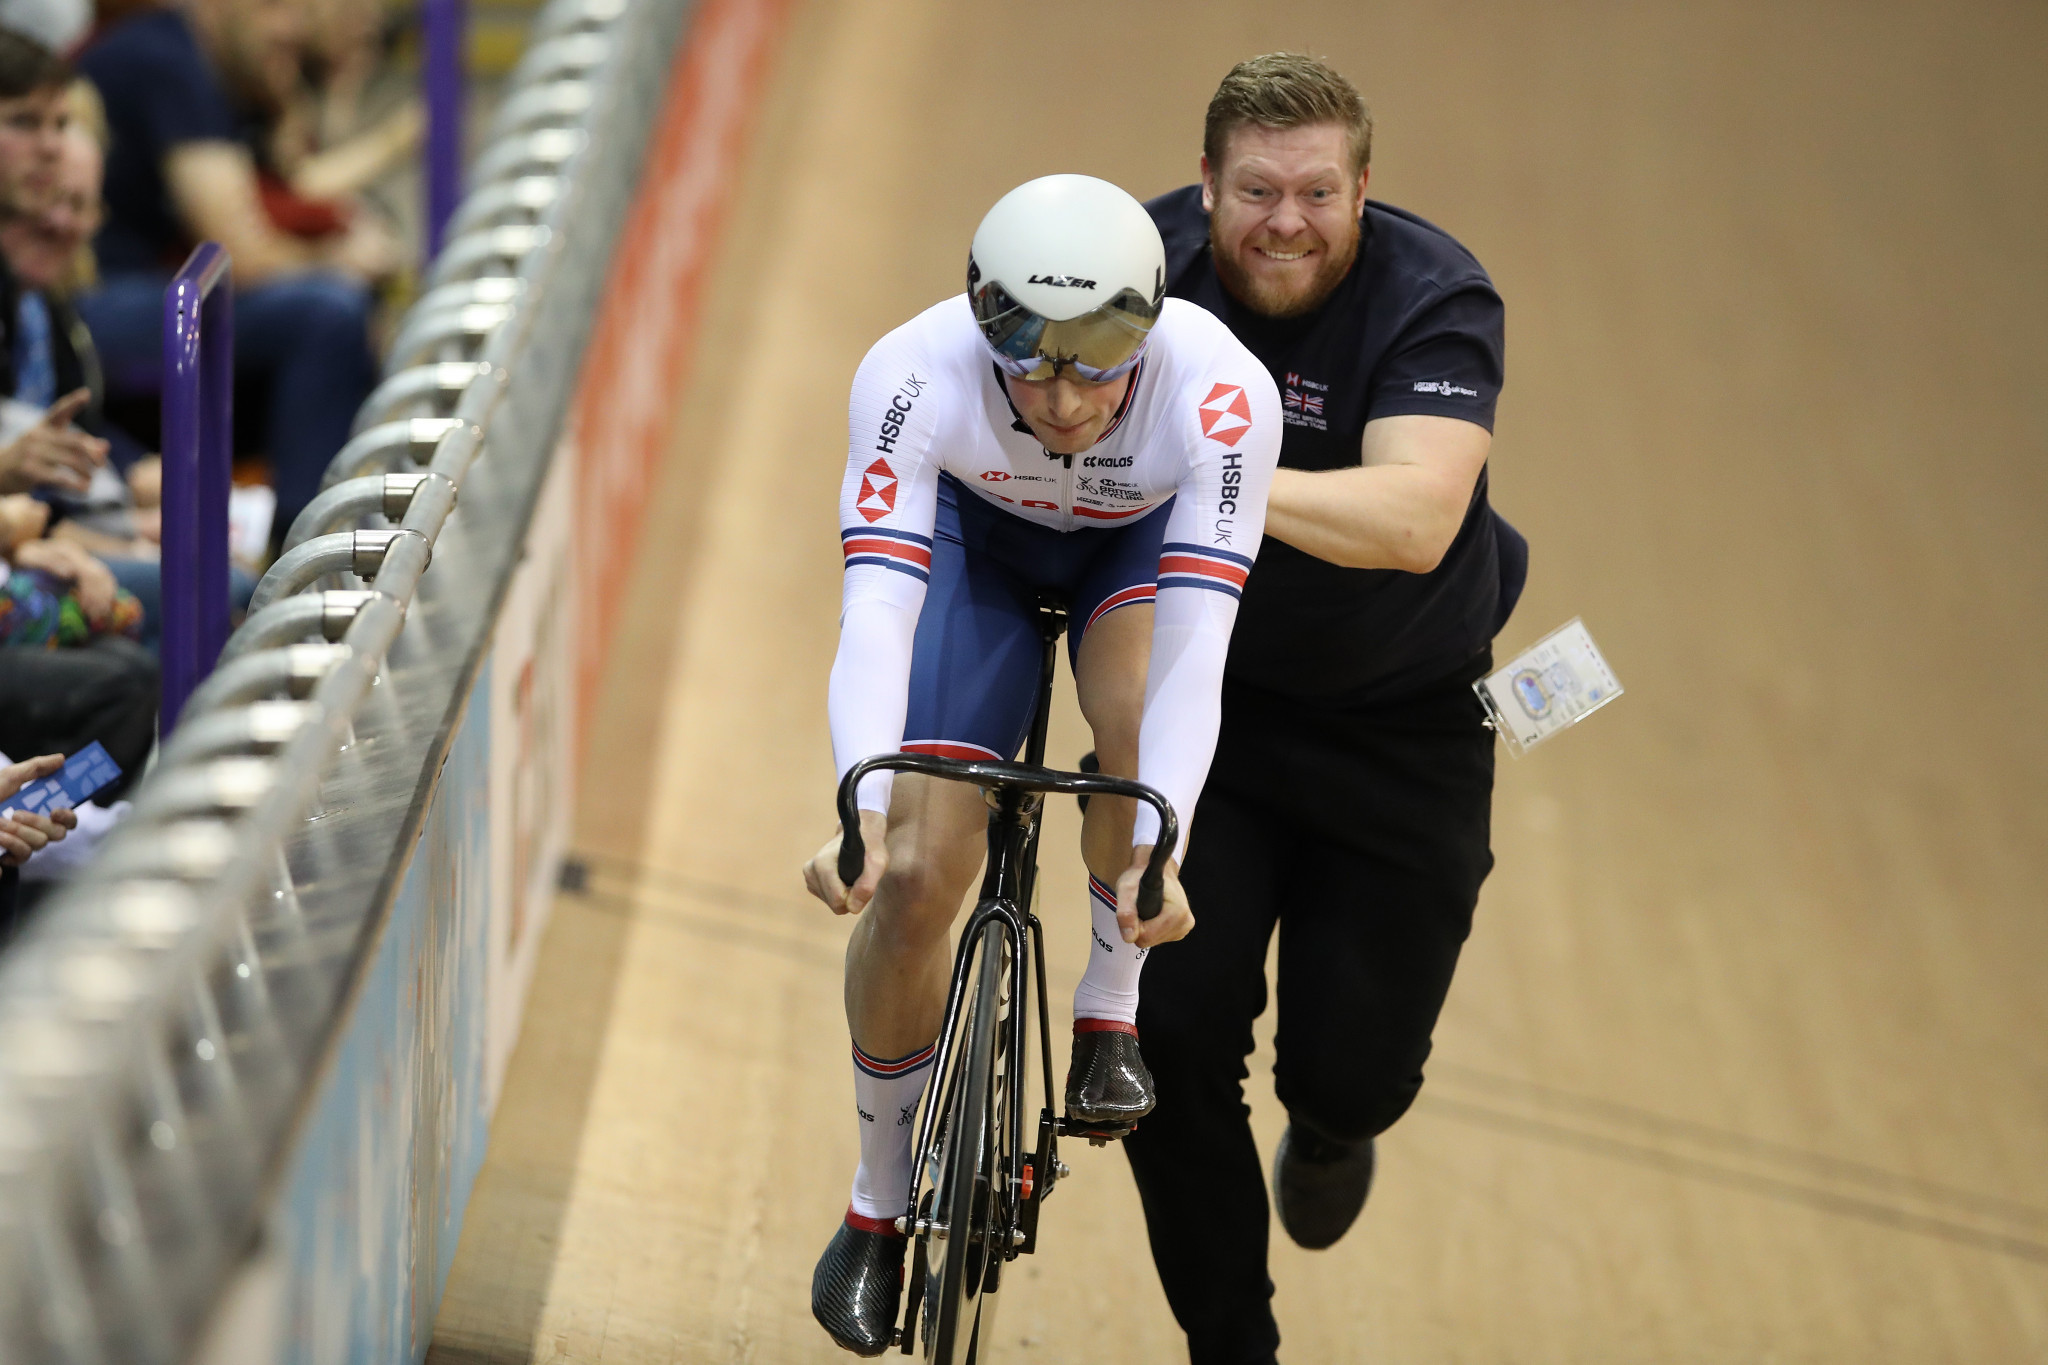 Sprint coach Kevin Stewart, right, has been sacked by British Cycling ©Getty Images